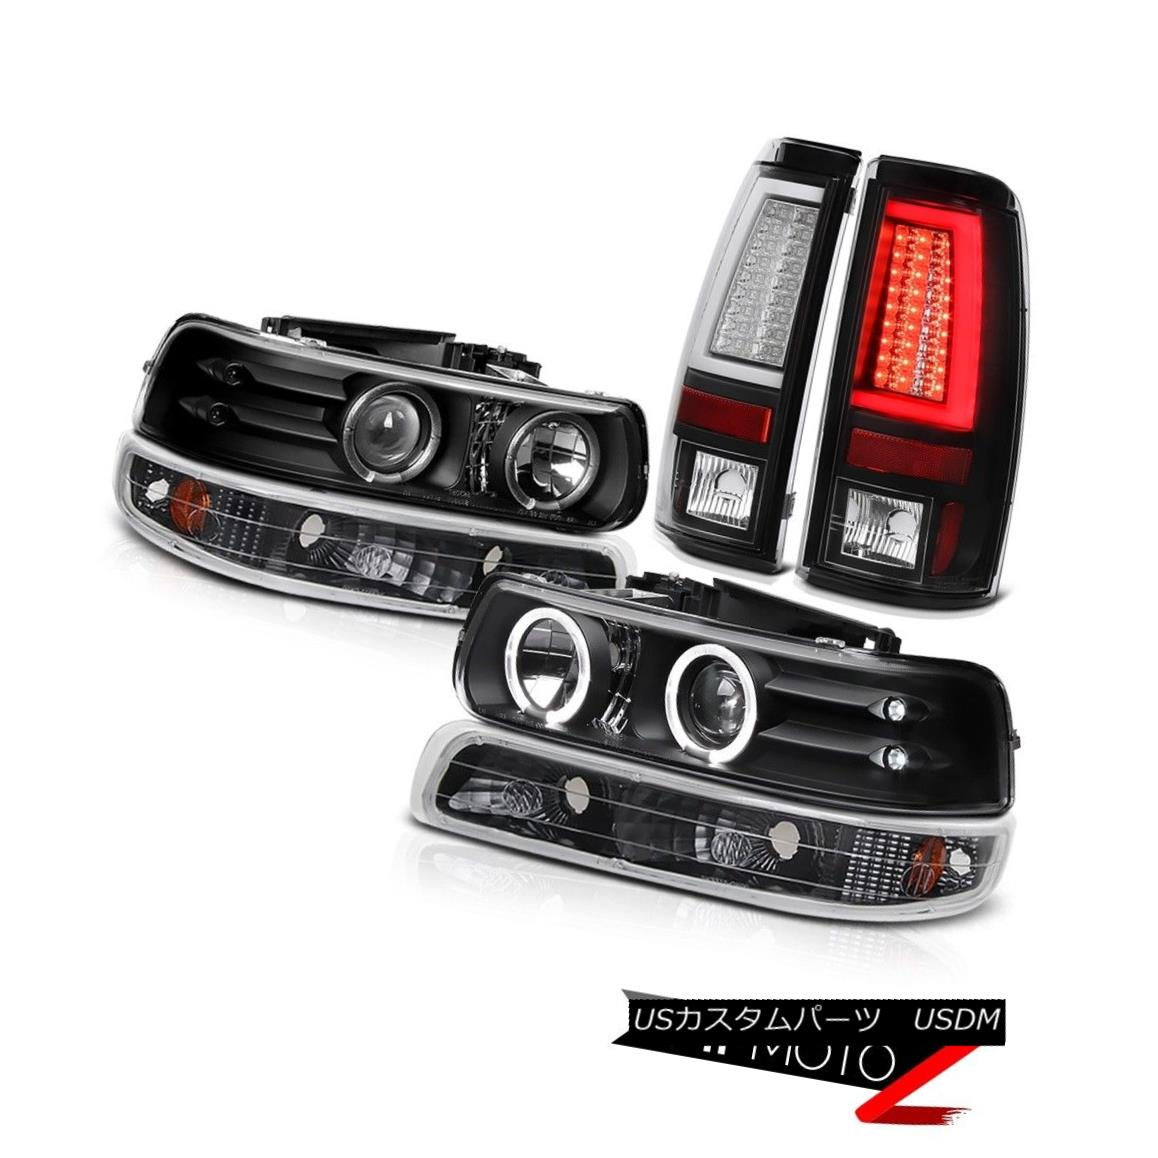 テールライト 99-02 Silverado WT Tail Lamps Fog Bumper Light Headlights LED Halo Rim Dual Halo 99-02 Silverado WTテールランプフォグバンパーライトヘッドライトLED Halo Rimデュアルヘイロー